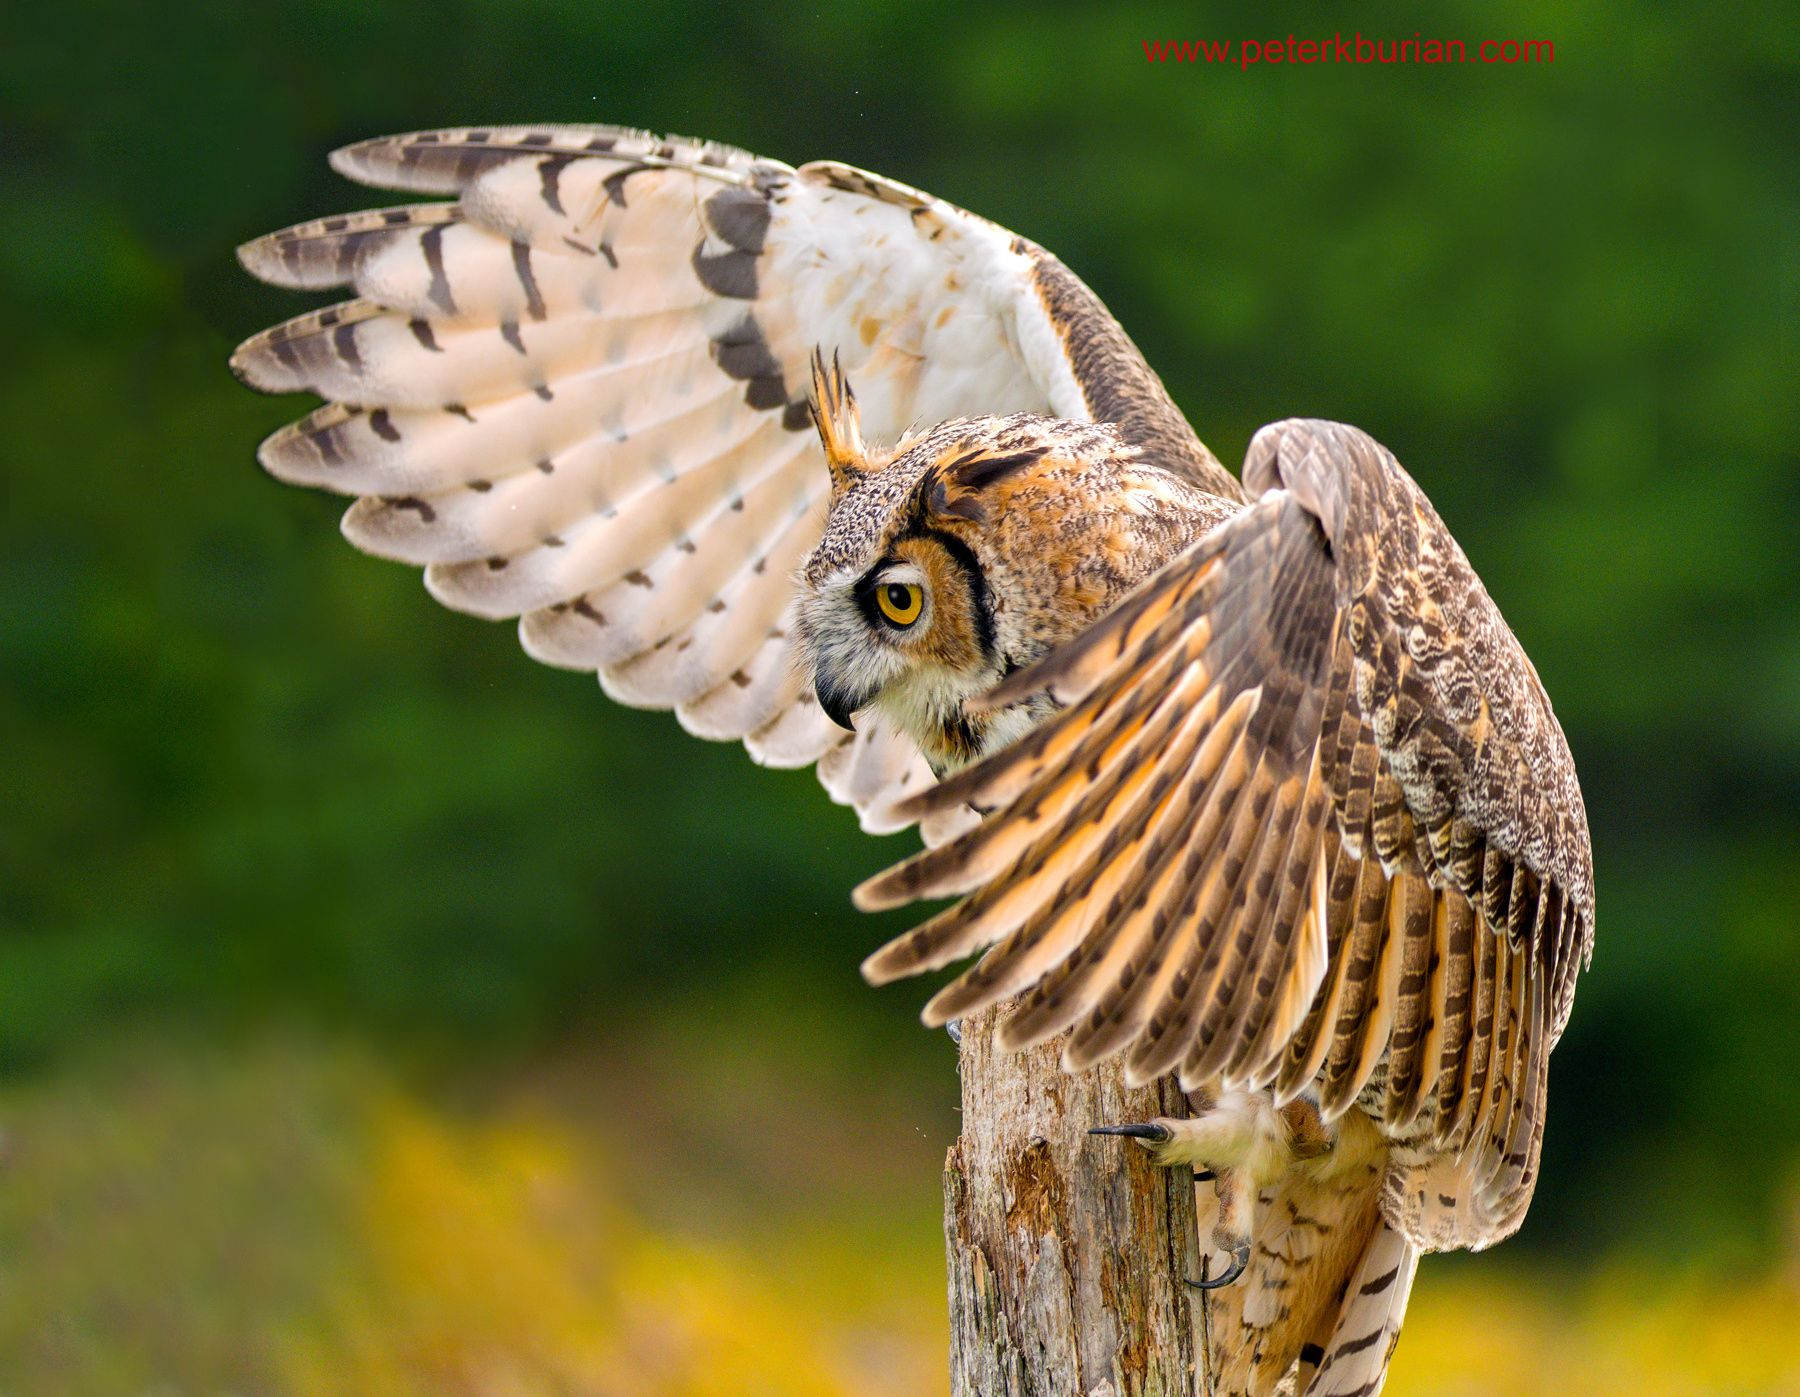 Great Horned Owl A - During a photo workshop, Controlled conditions ...